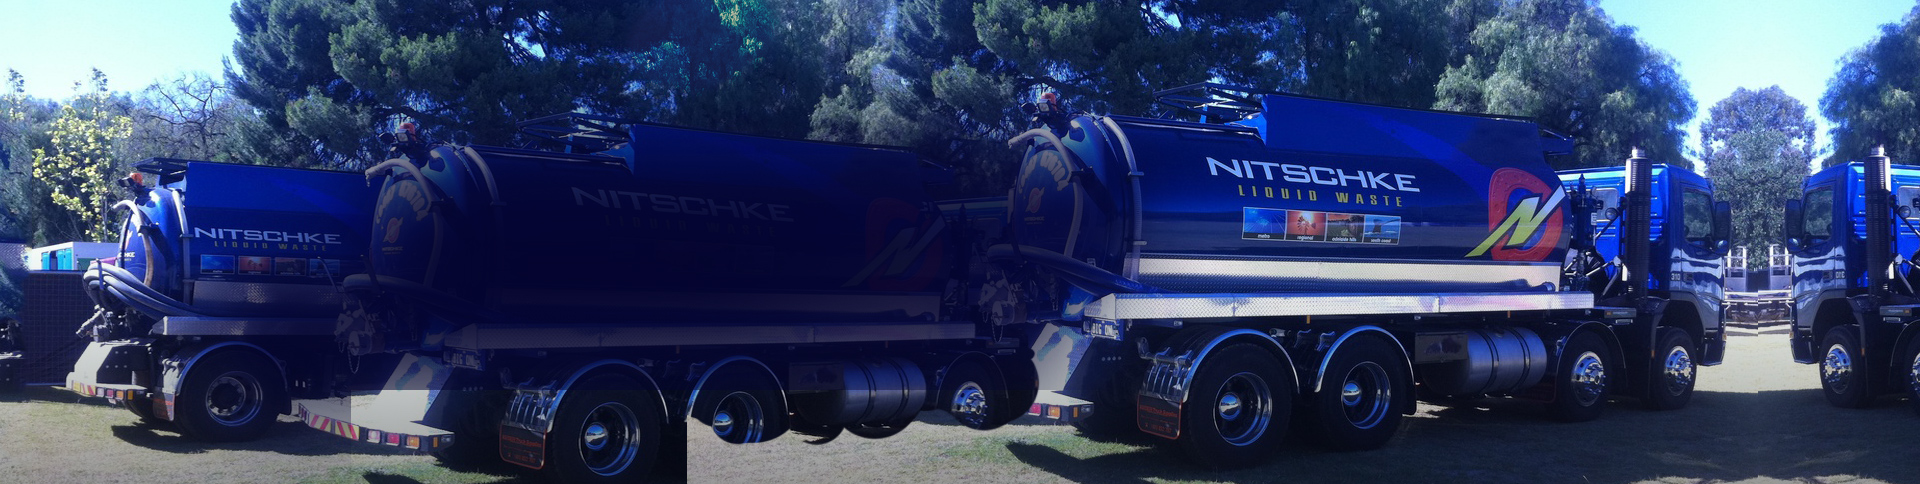 Liquid Waste Disposal Adelaide - Nitschke Liquid Waste